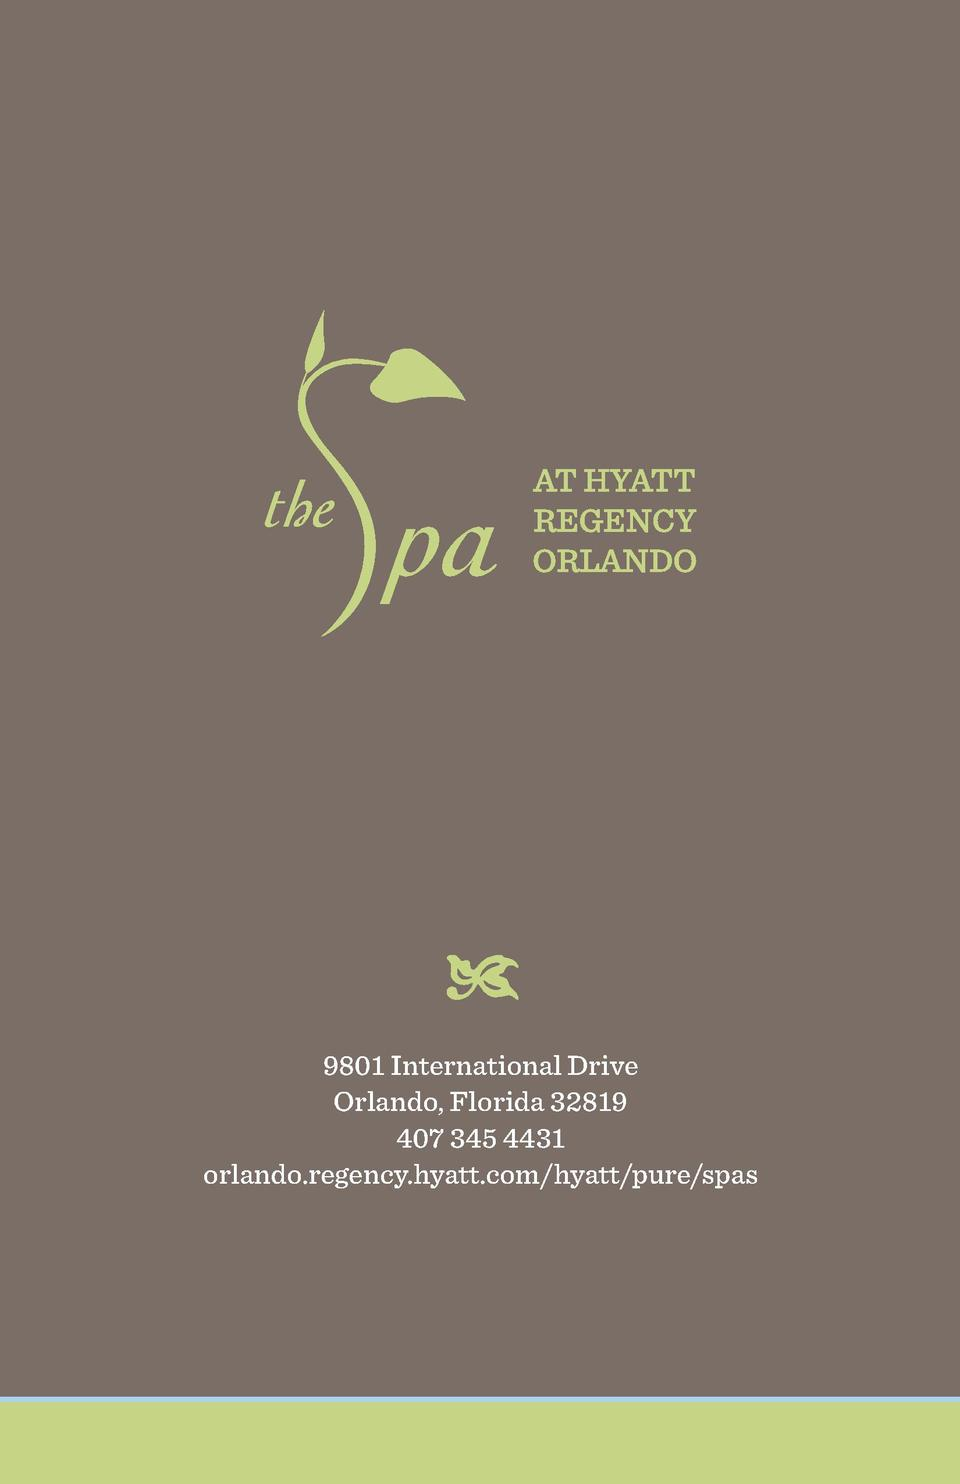 9801 International Drive Orlando, Florida 32819 407 345 4431 orlando.regency.hyatt.com hyatt pure spas  16